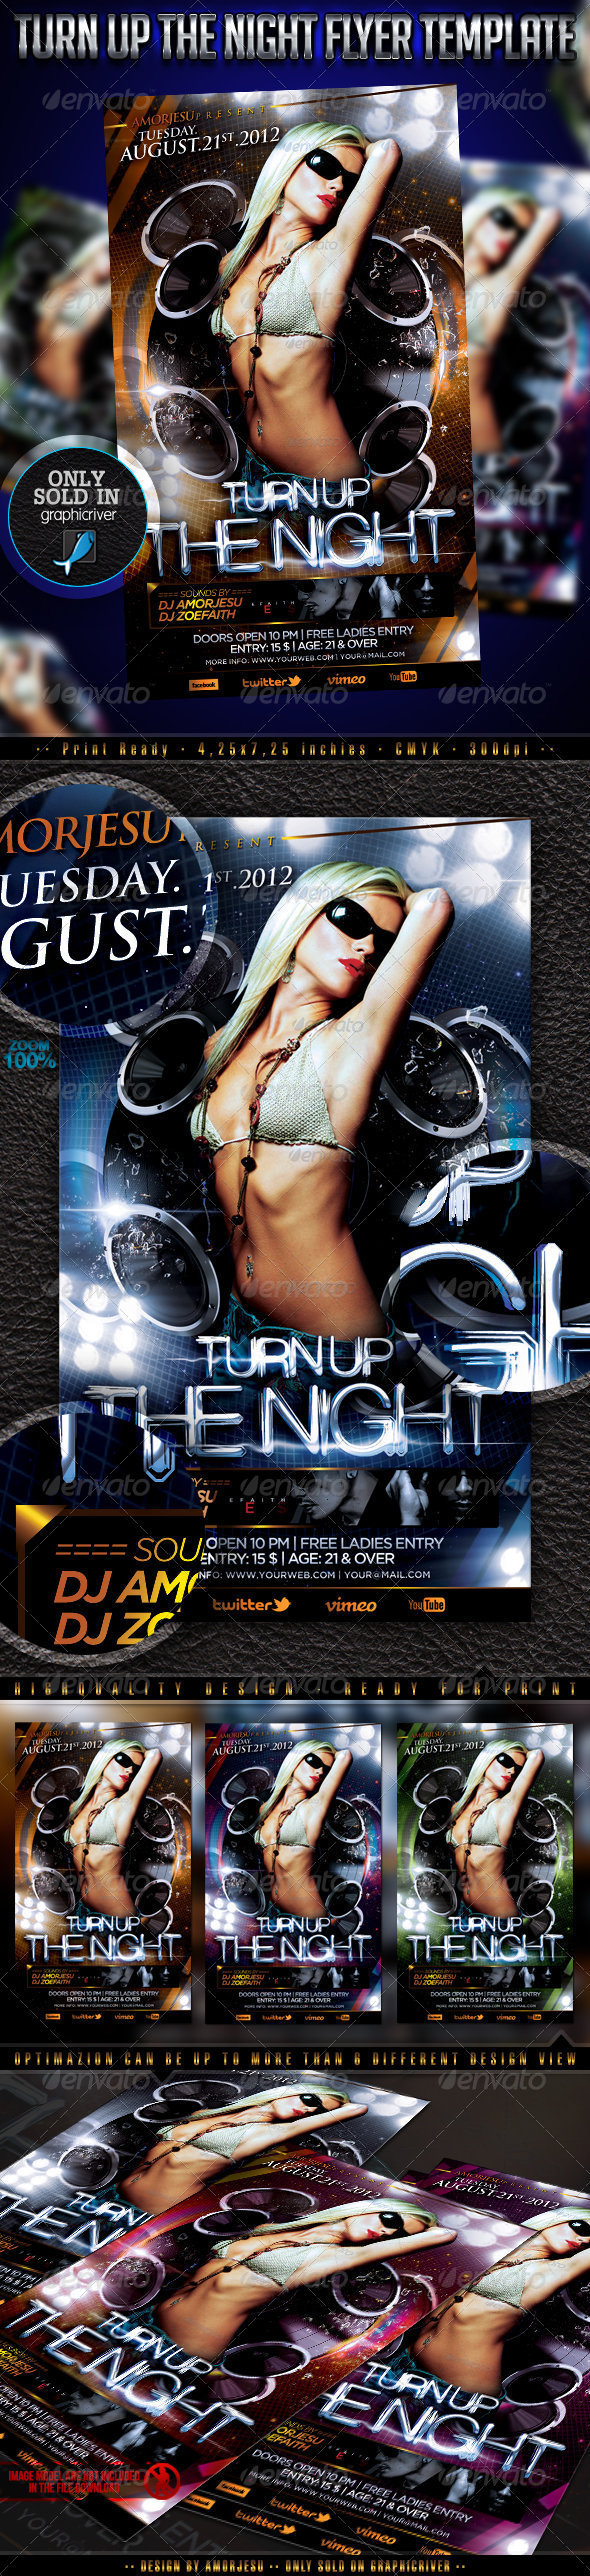 Turn Up The Night Flyer Template - Events Flyers